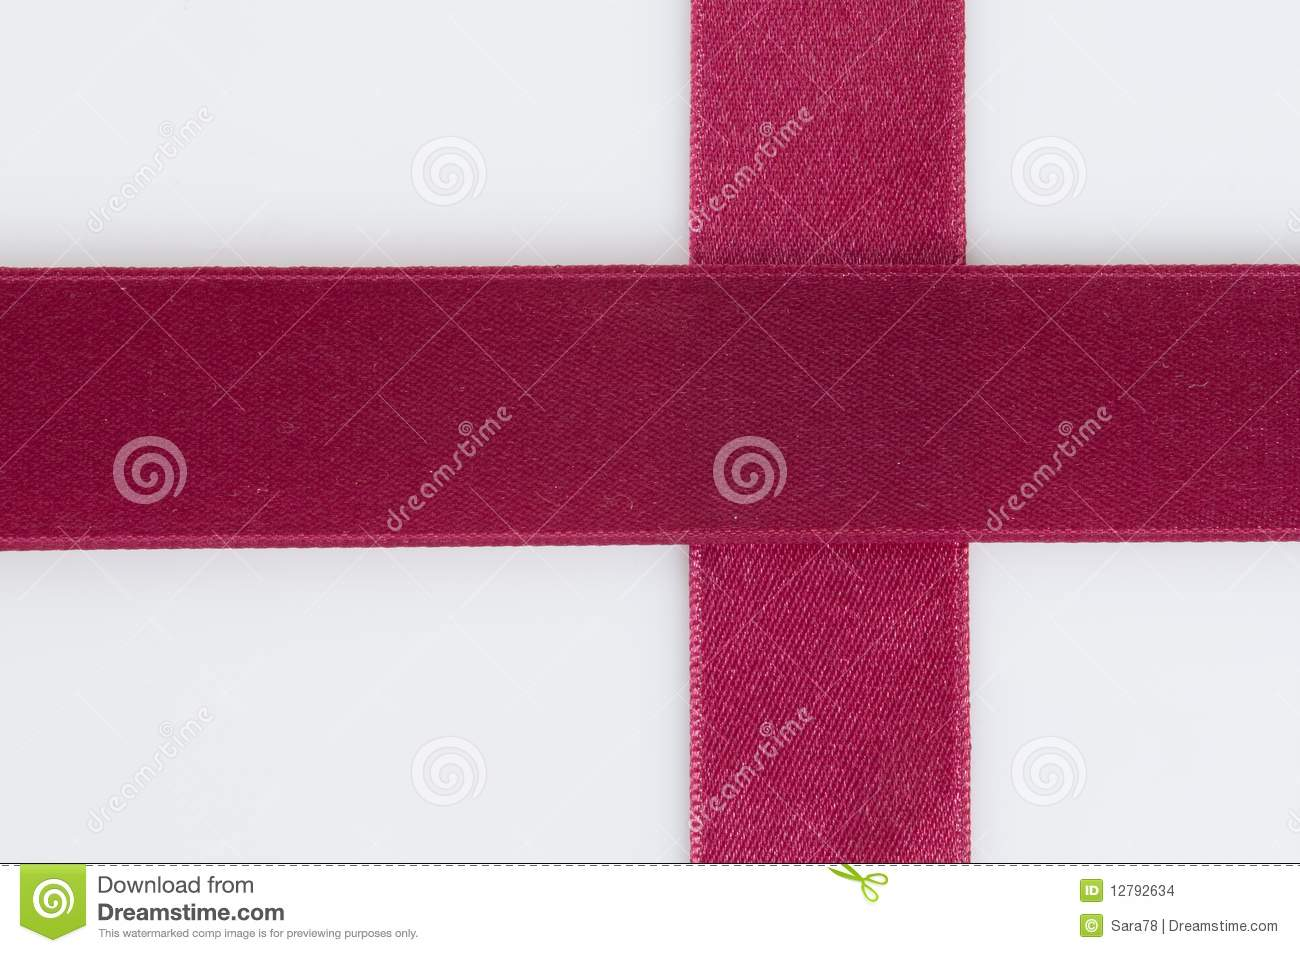 croos-shaped red ribbon, copy space